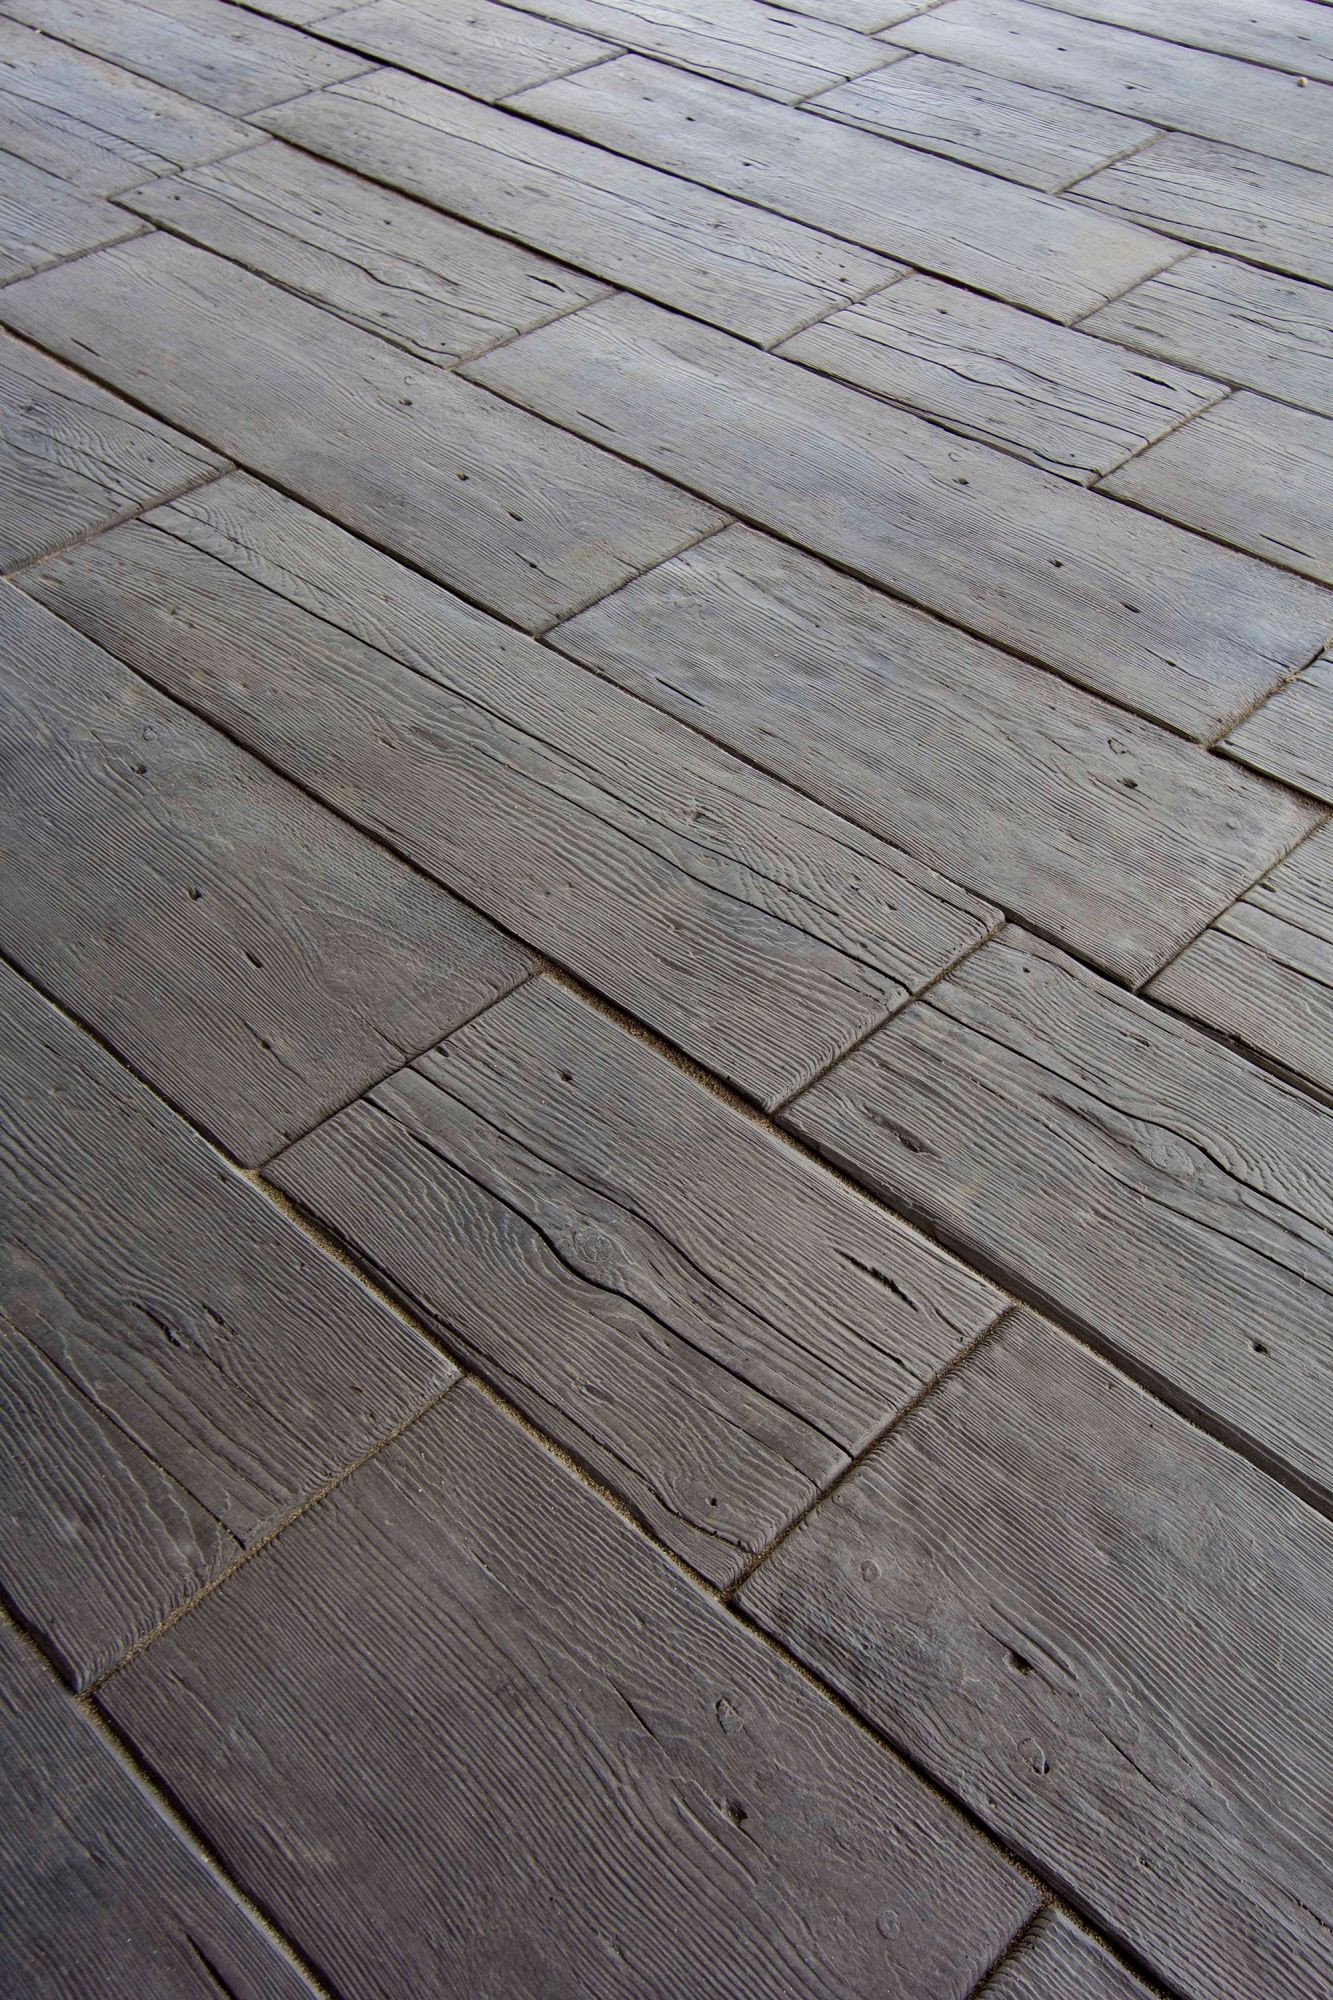 Hardwood Floor Refinishing Wilmington Delaware Of Rustic Wood Nope 2 Thick Concrete Pavers Barn Plank Landscape within Rustic Wood Nope 2 Thick Concrete Pavers Barn Plank Landscape Tile by Silver Creek Stoneworks Rochester Mn Ideal for Outdoor Paths Decks Etc